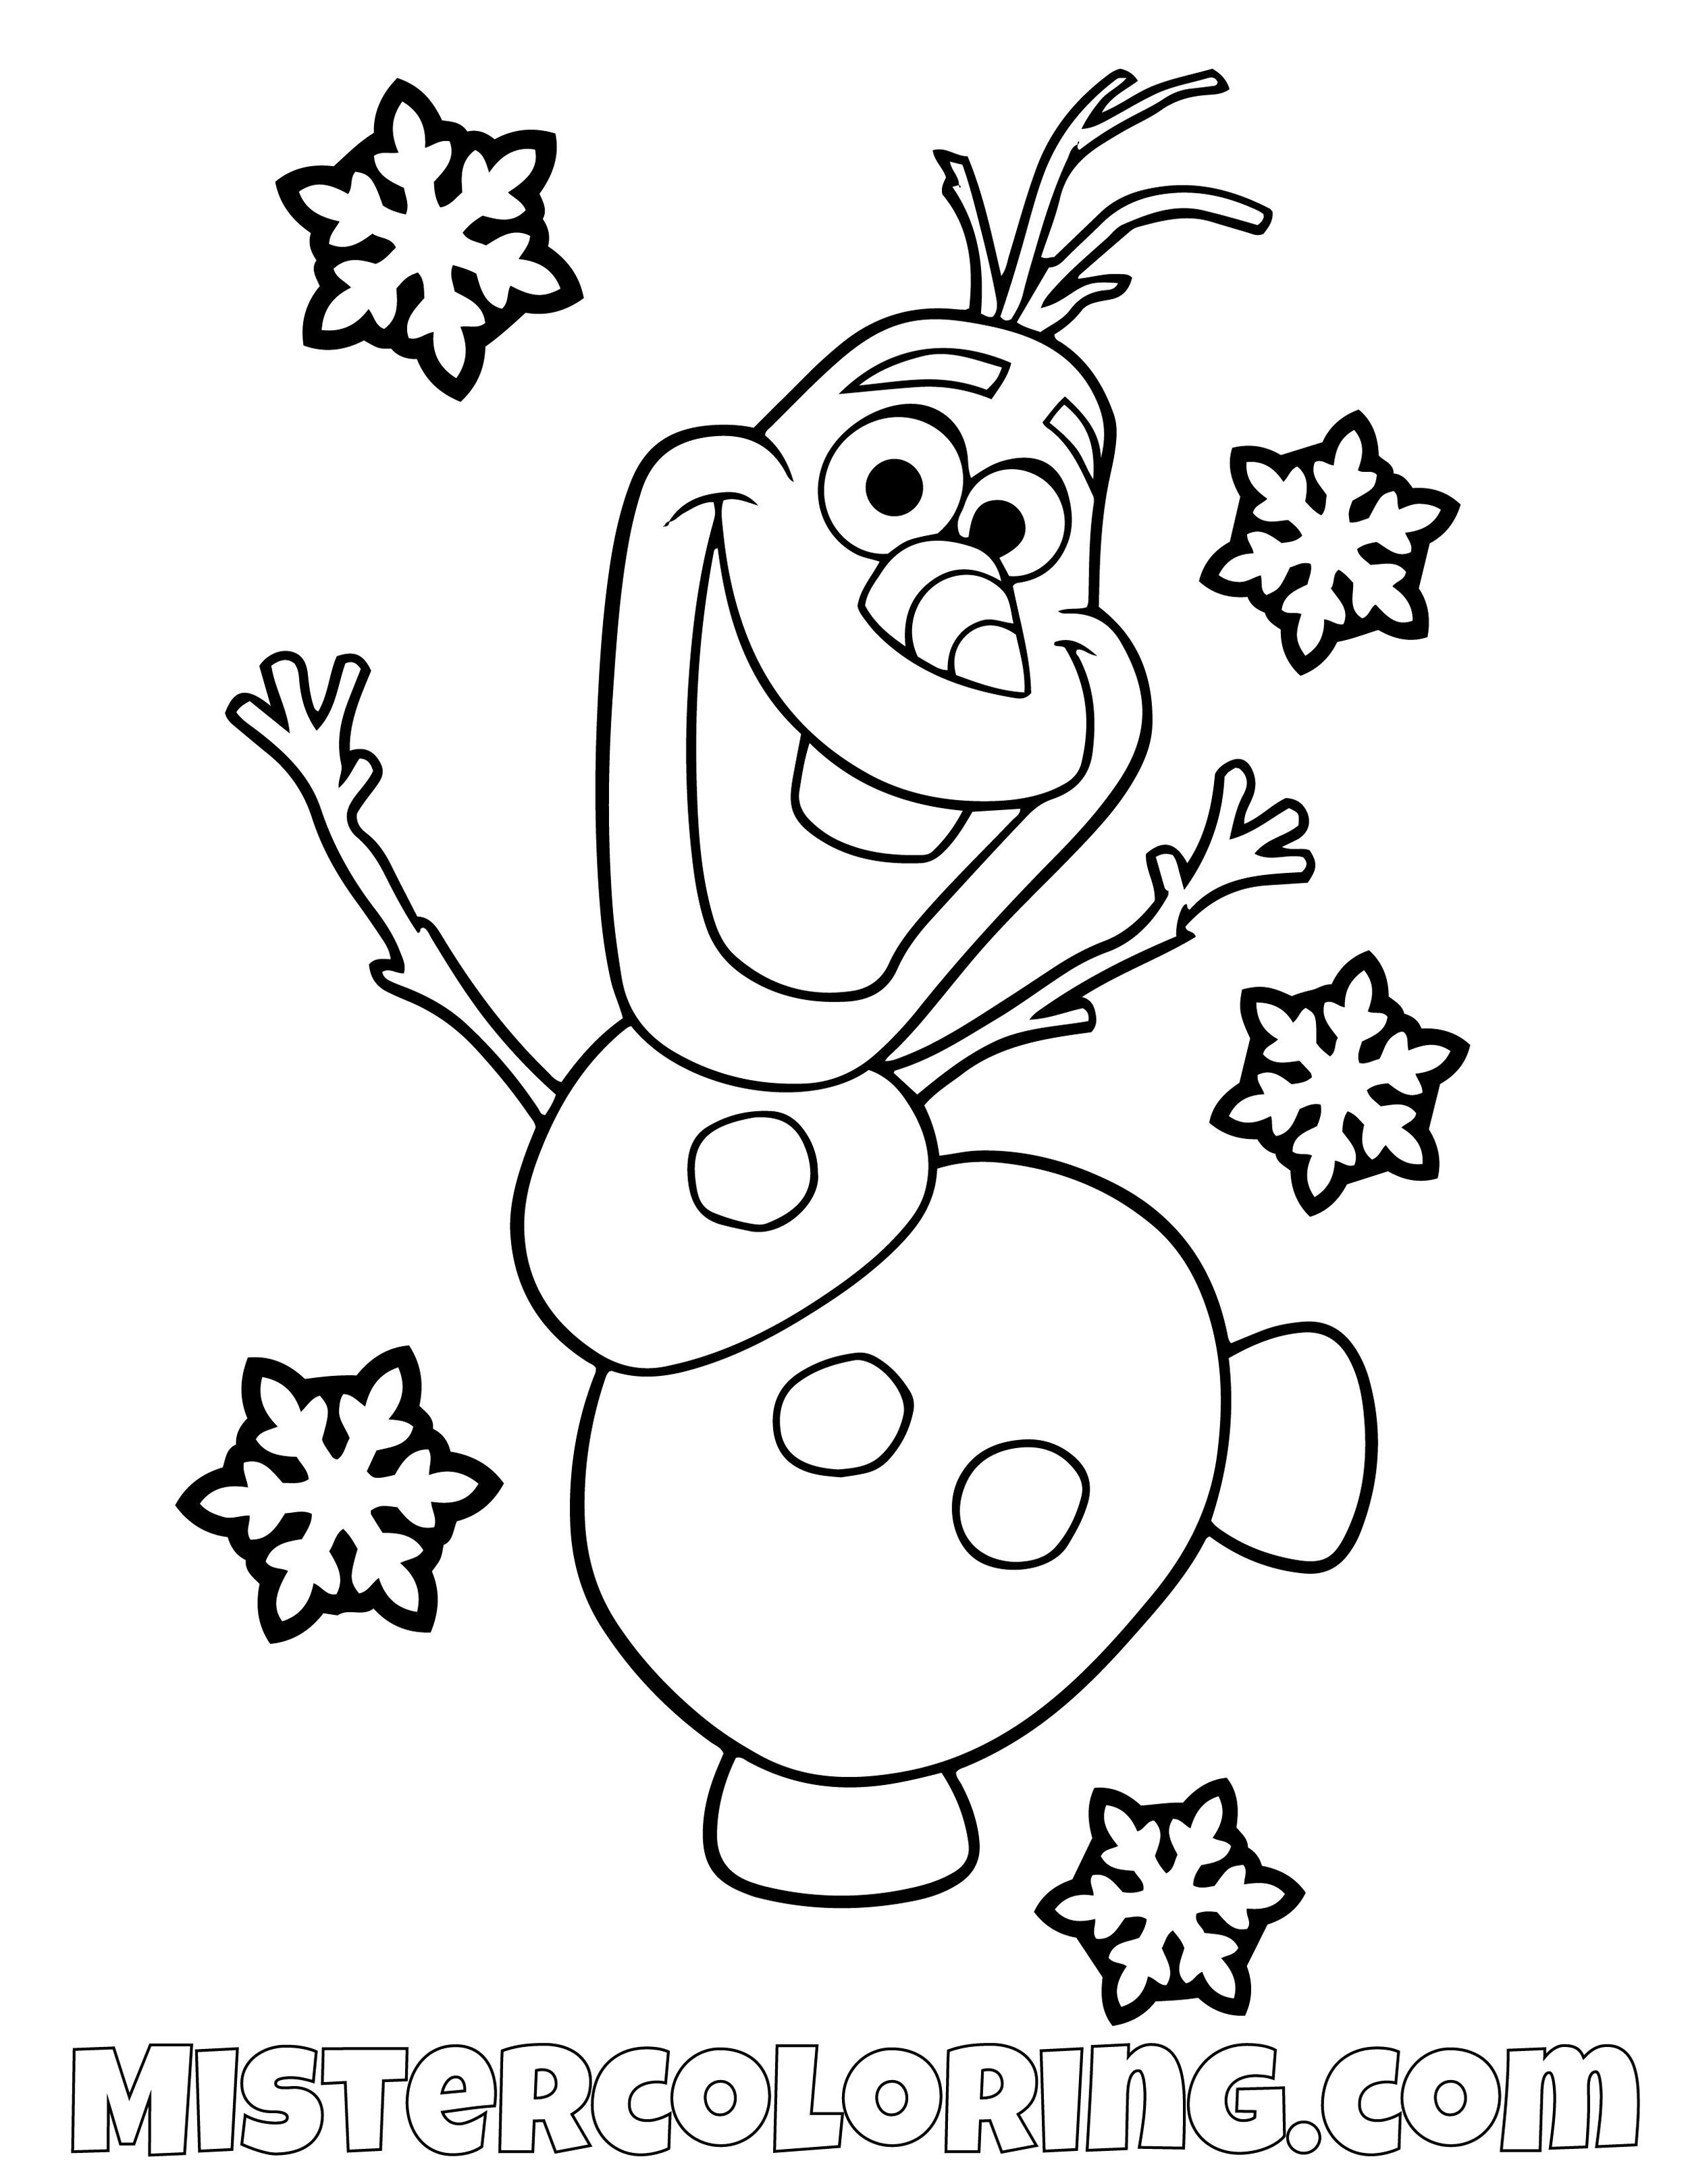 Olaf Coloring Pages Coloringnori Coloring Pages For Kids